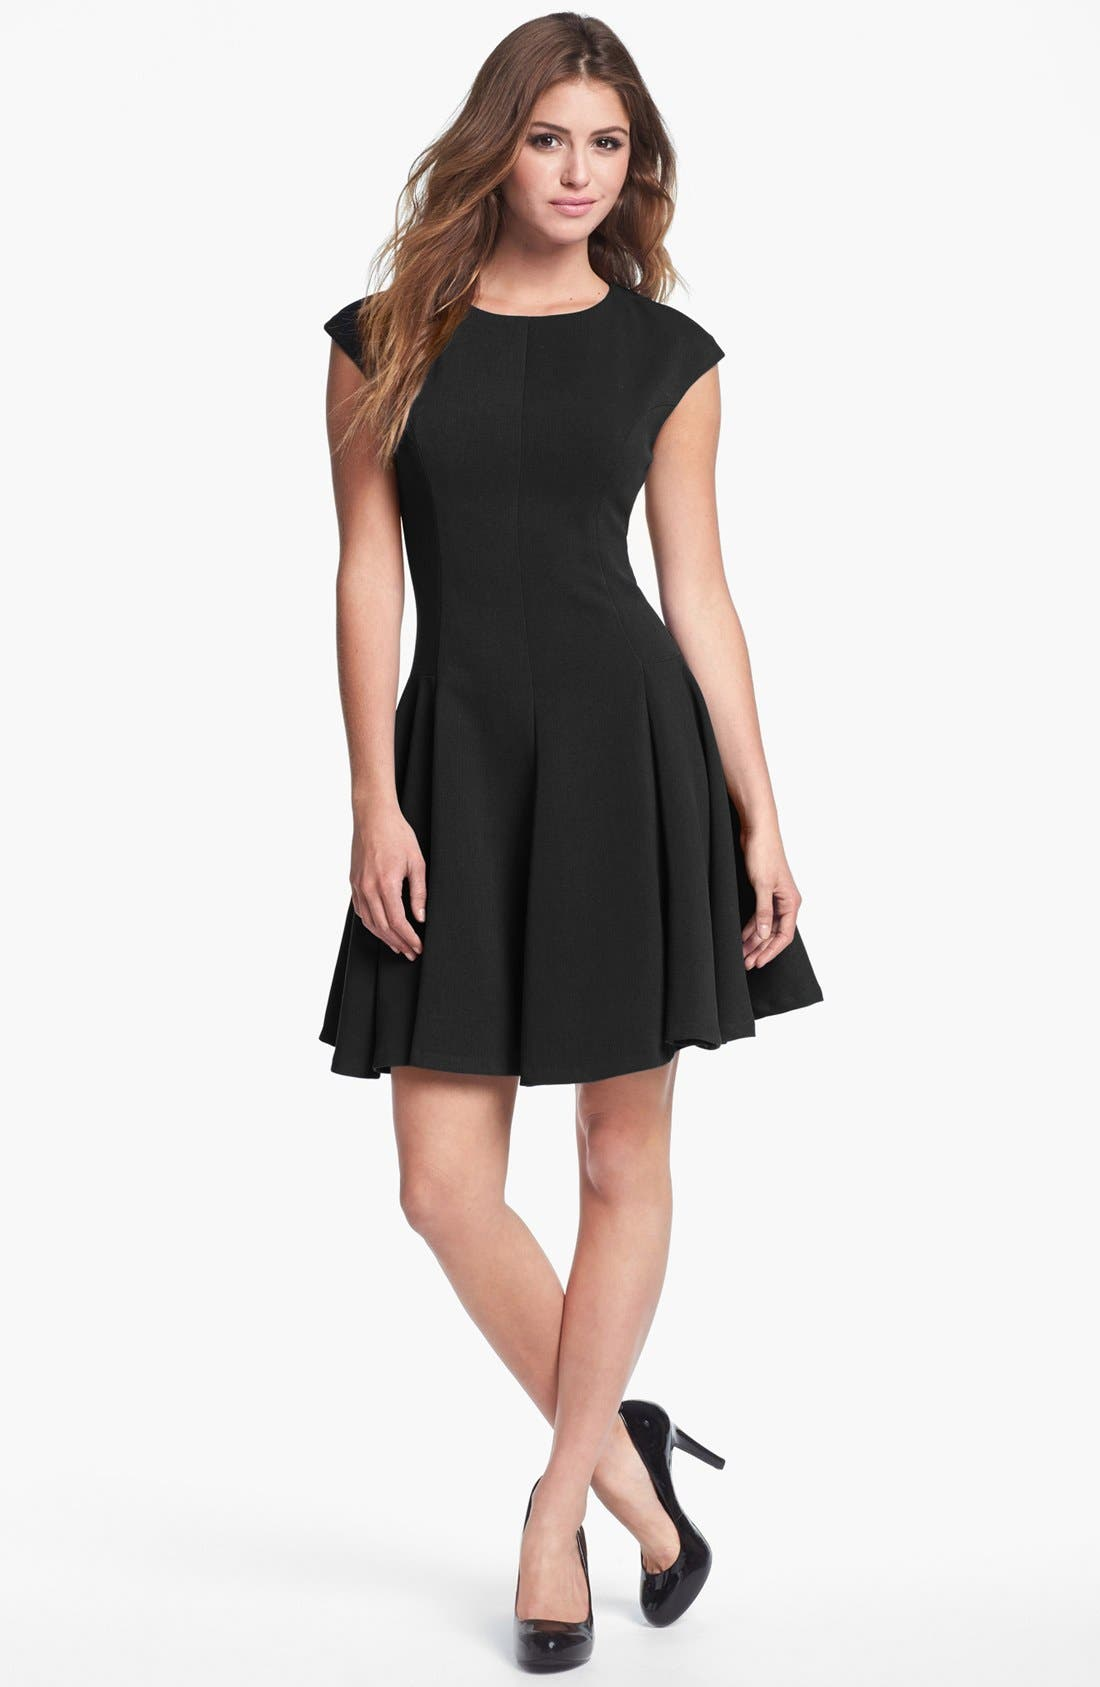 Alternate Image 1 Selected - Eliza J Ponte Knit Skater Dress (Regular & Petite)